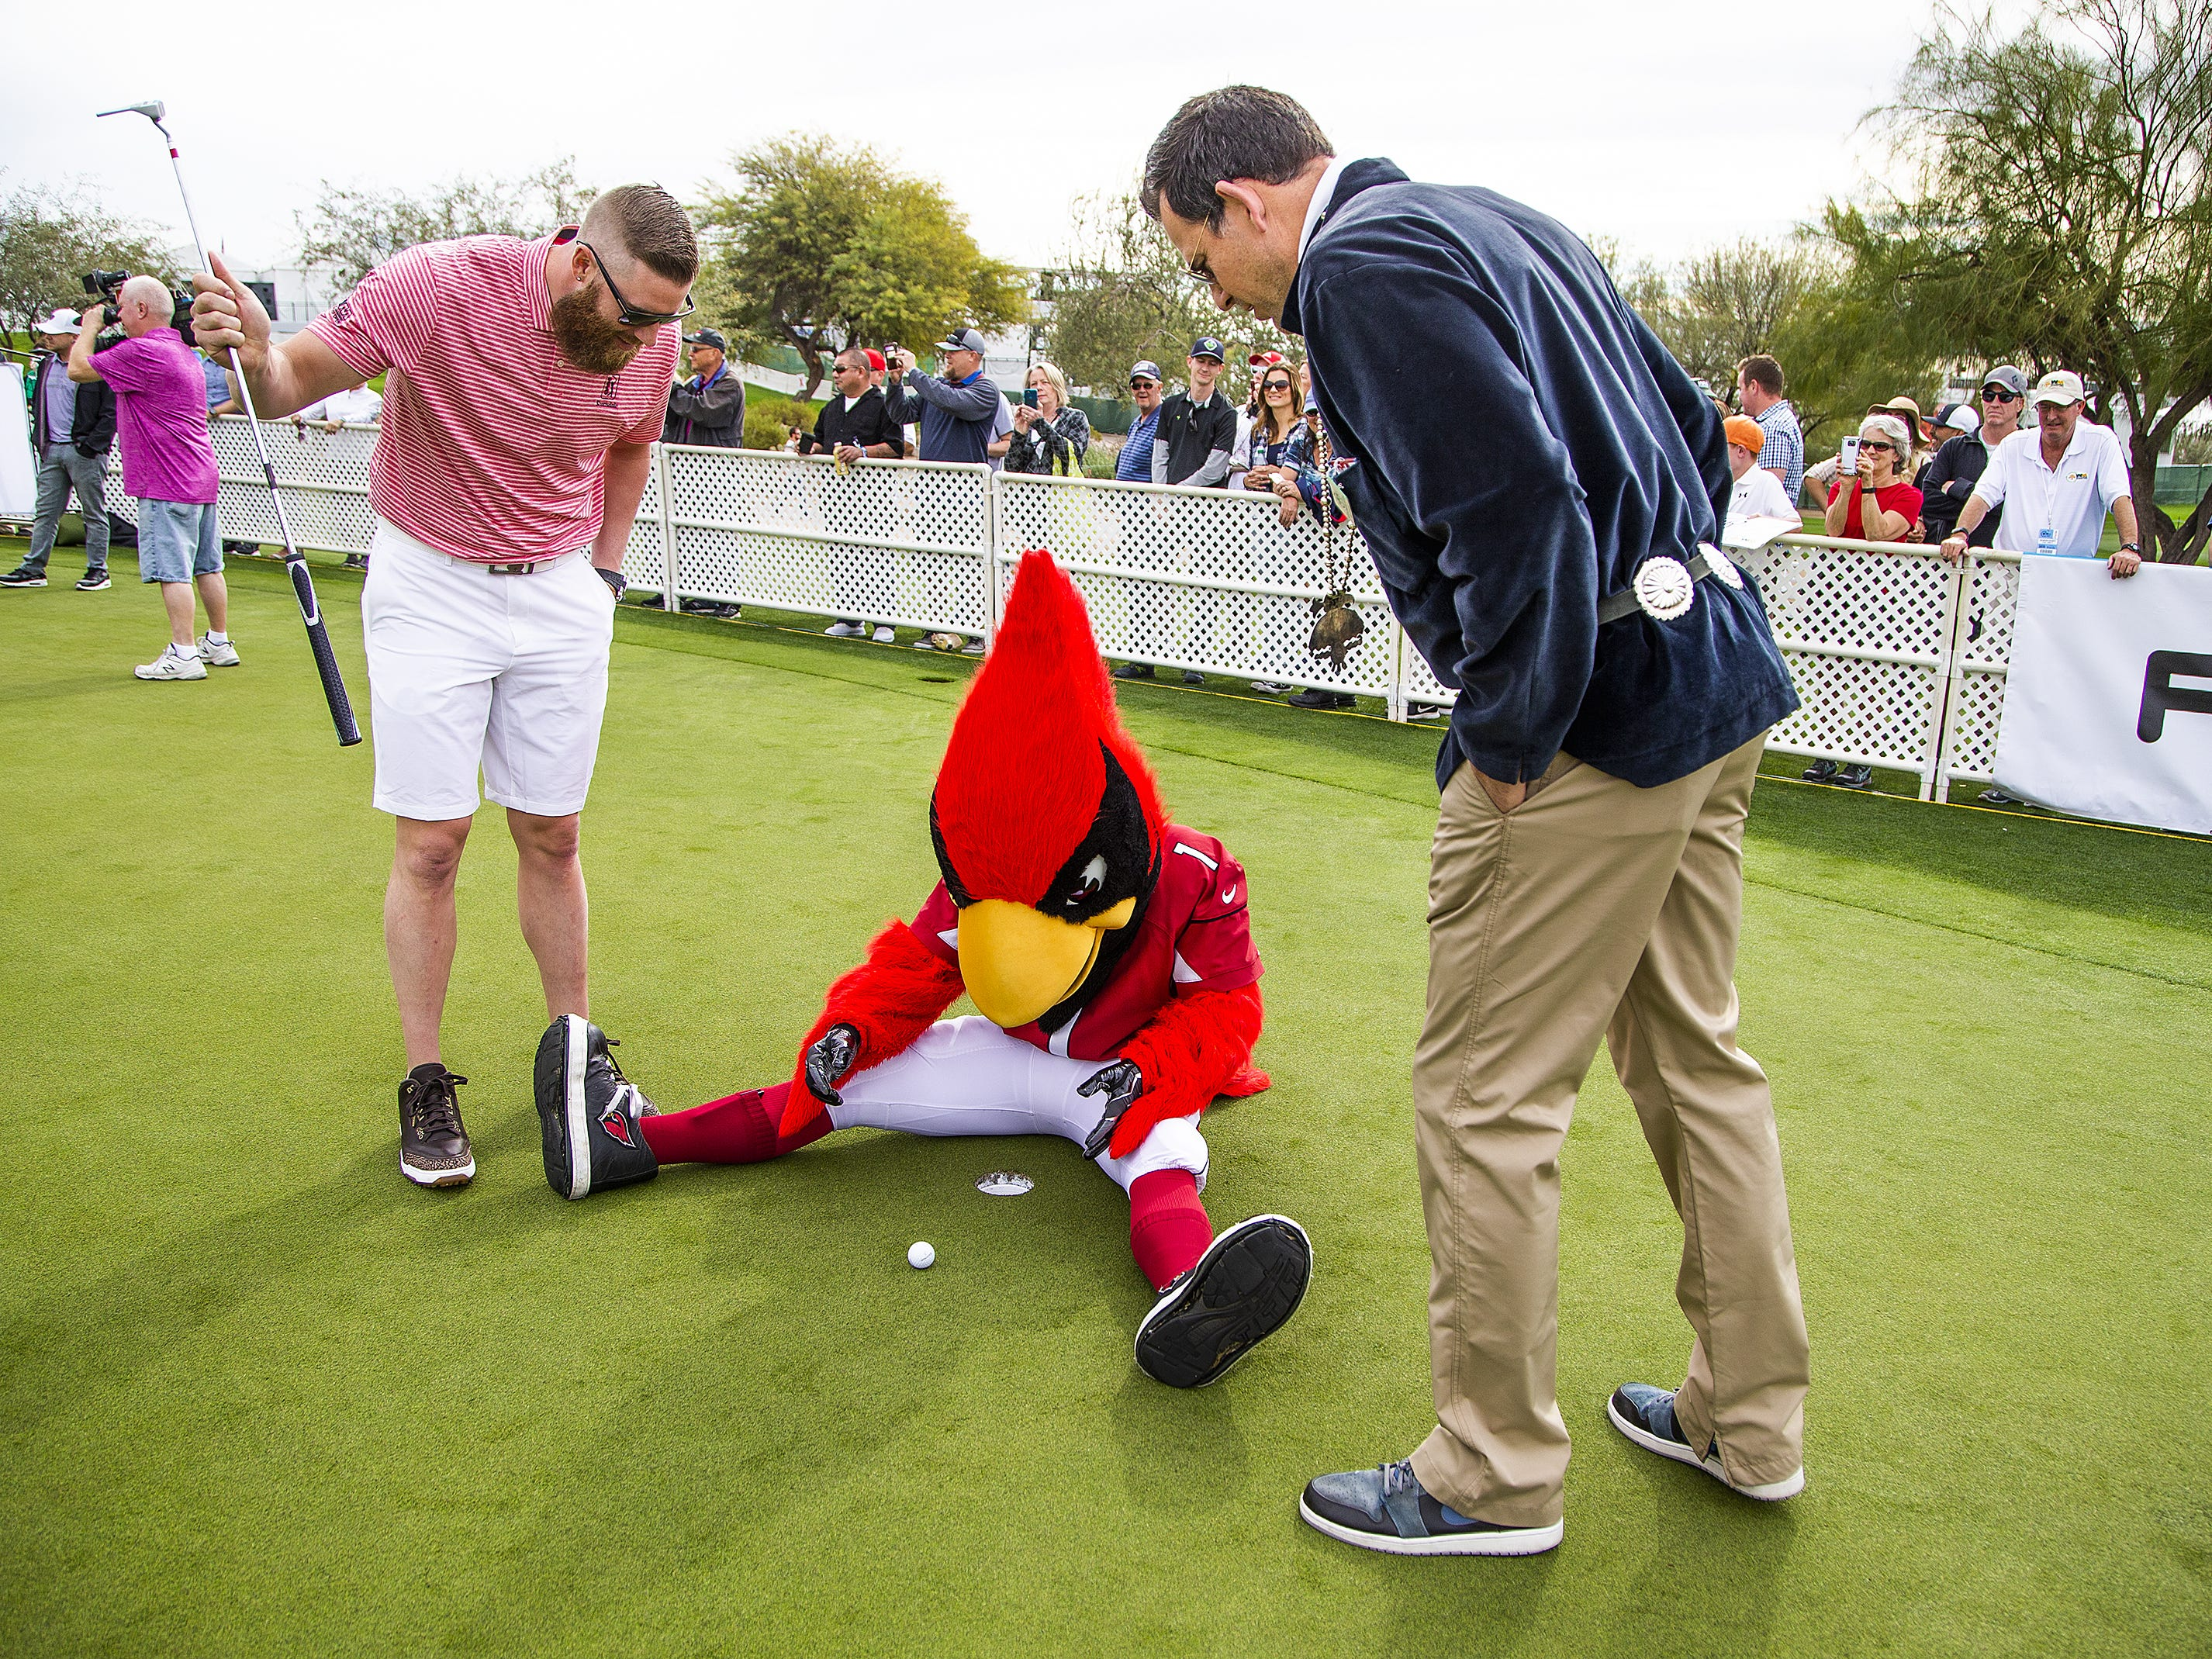 Arizona Diamondbacks pitcher Archie Bradley, left, and the Arizona Cardinals mascot, Big Red, play around during the San Tan Ford Special Olympics Open at the Waste Management Phoenix Open at the TPC Scottsdale, Tuesday, January 29, 2019.